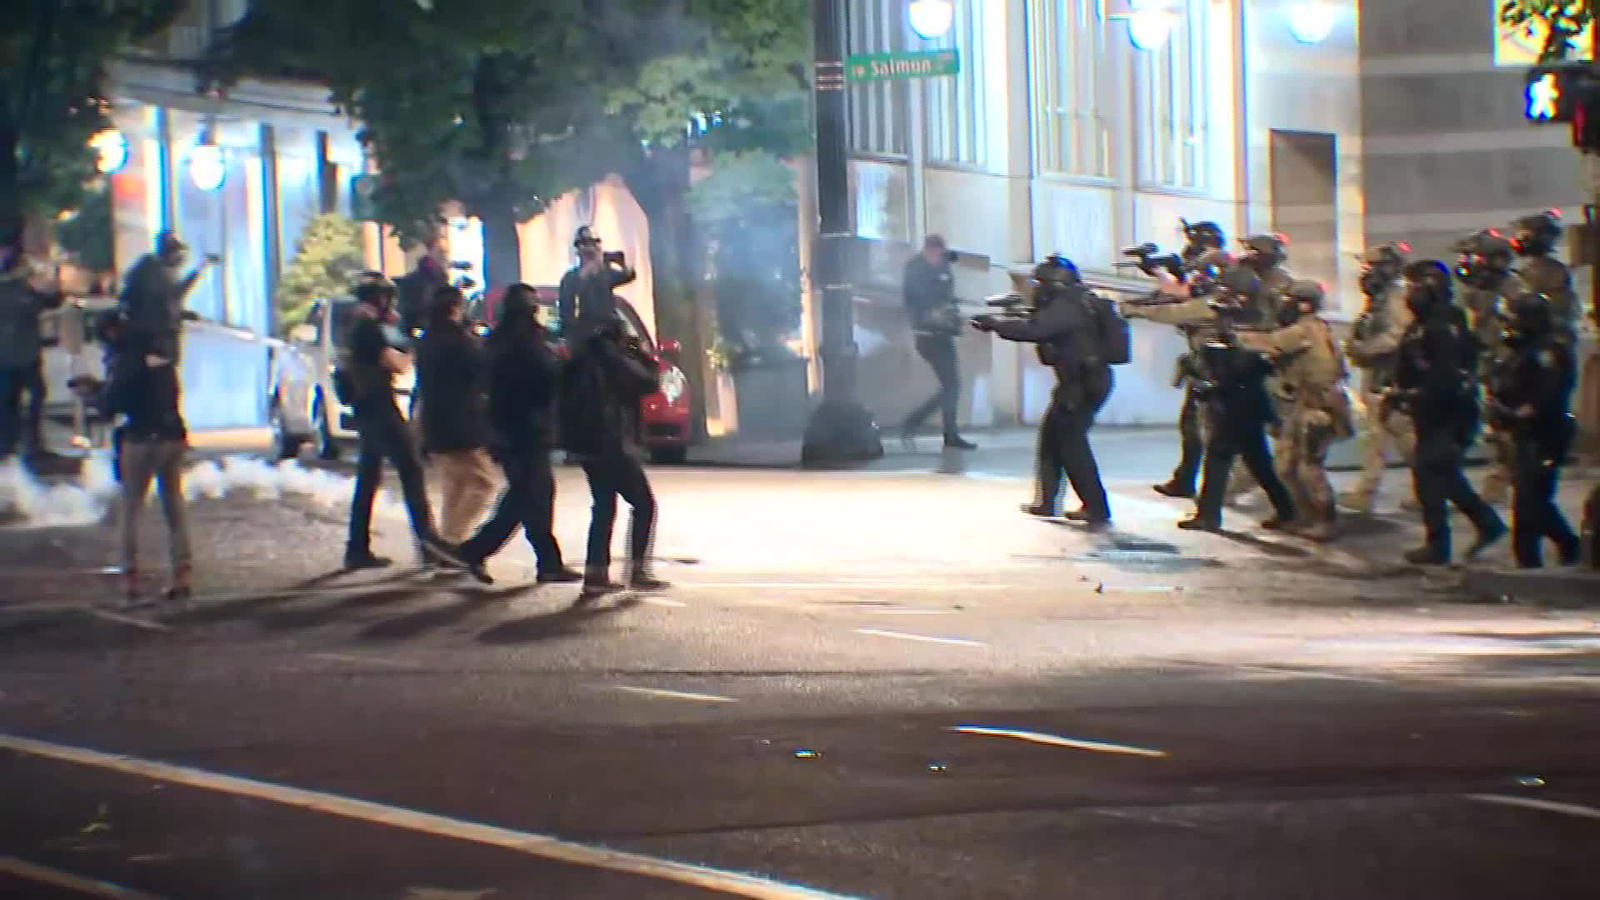 Portland Police declare a riot due to protesters in Porland, Oregon, on September 24.